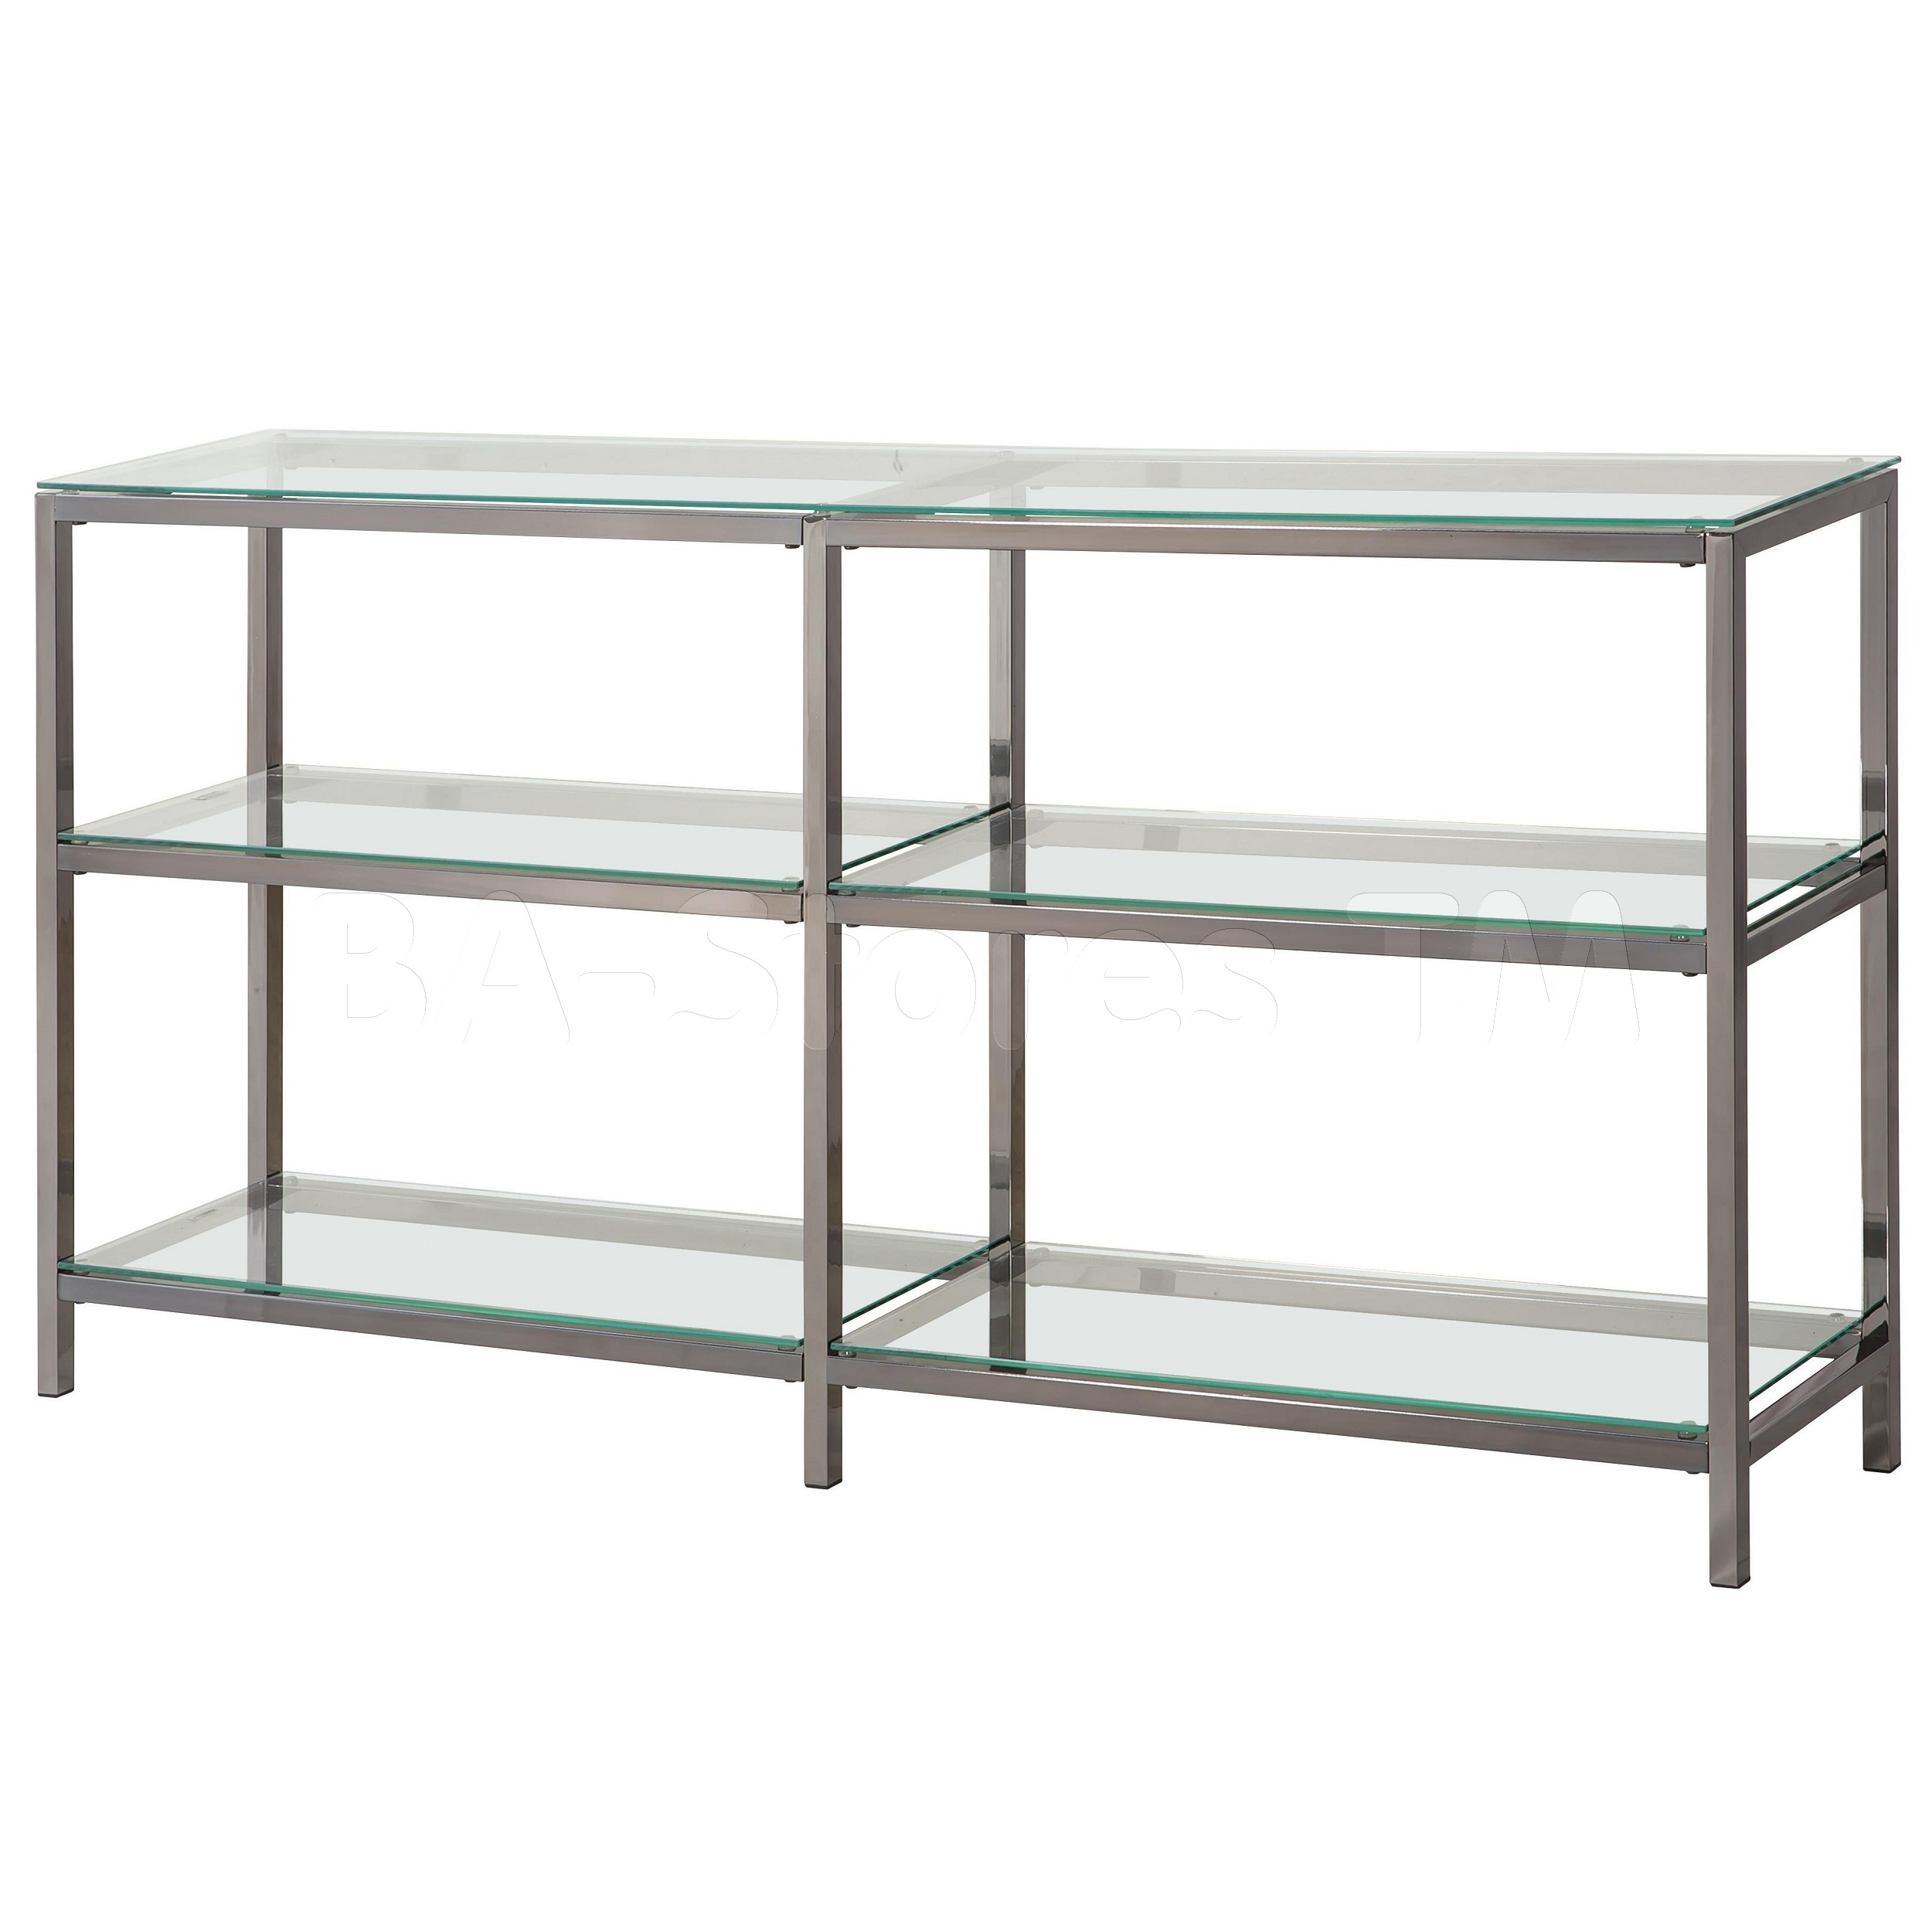 polished in alan decor set copper vintage wood iron bookcases donley mirror rustic glass metal of shelving bookcase industrial and modern collections